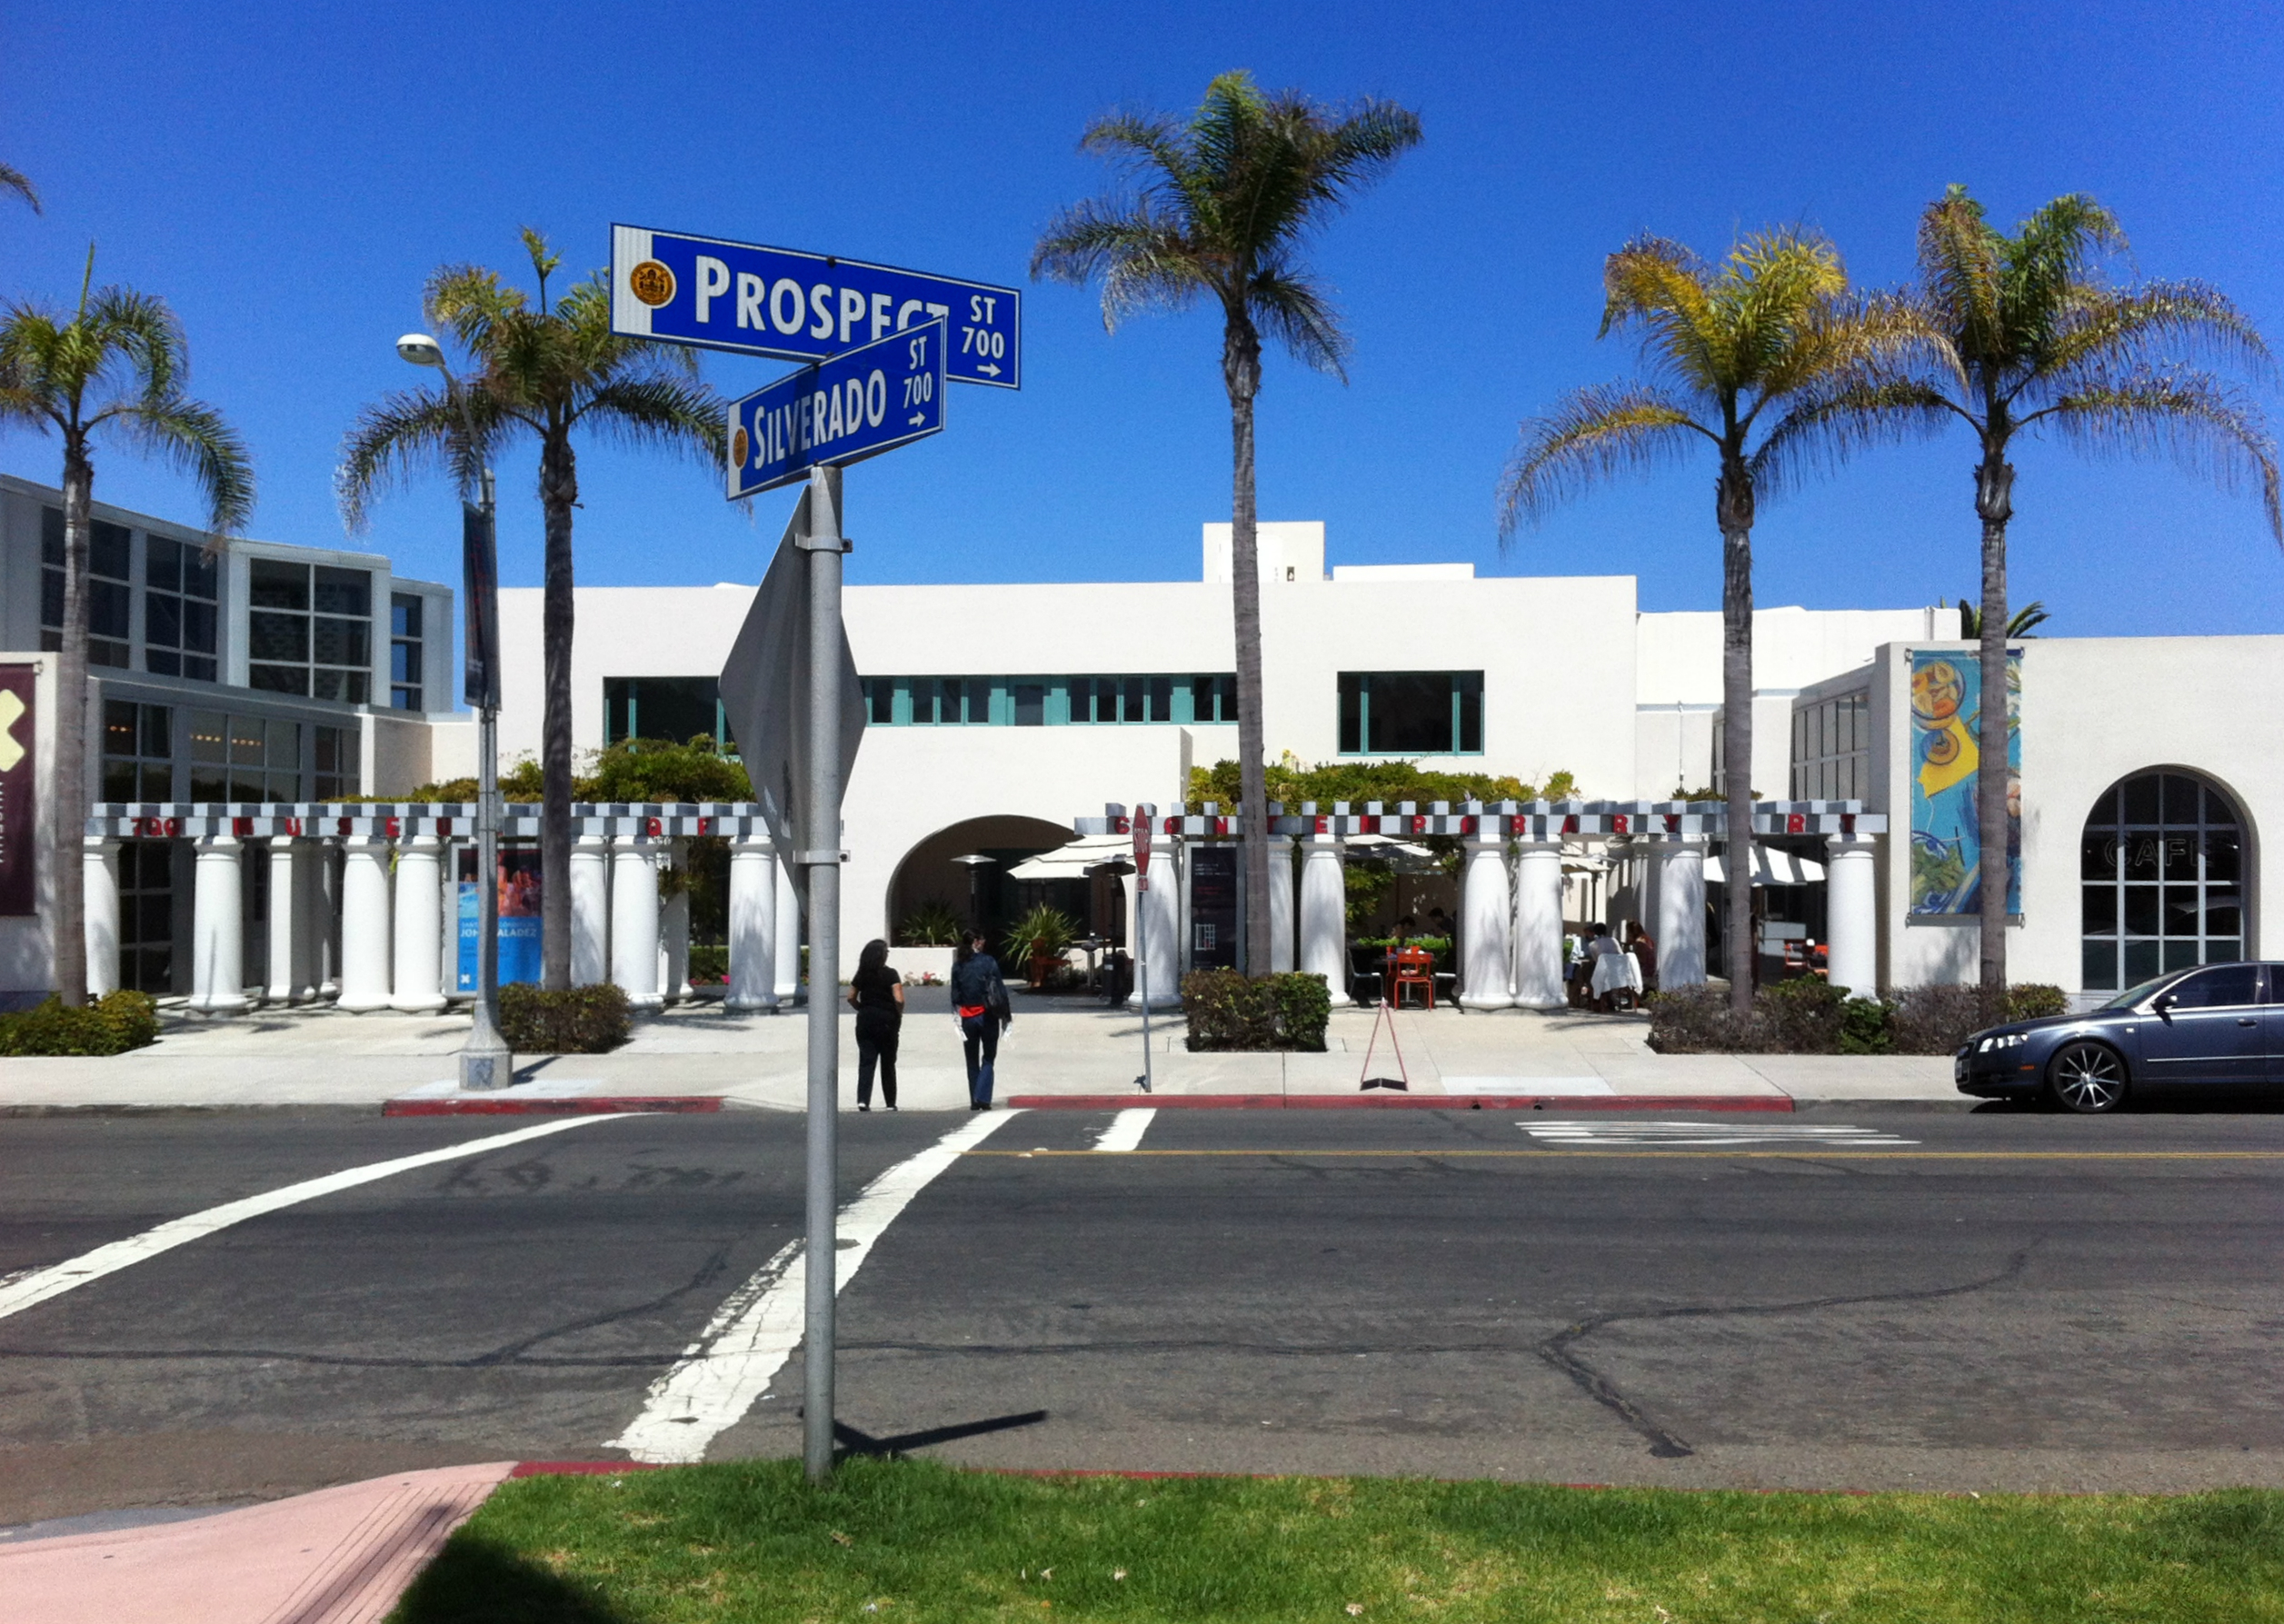 The Museum of Contemporary Art, San Diego, in La Jolla, California, as seen in 2012.